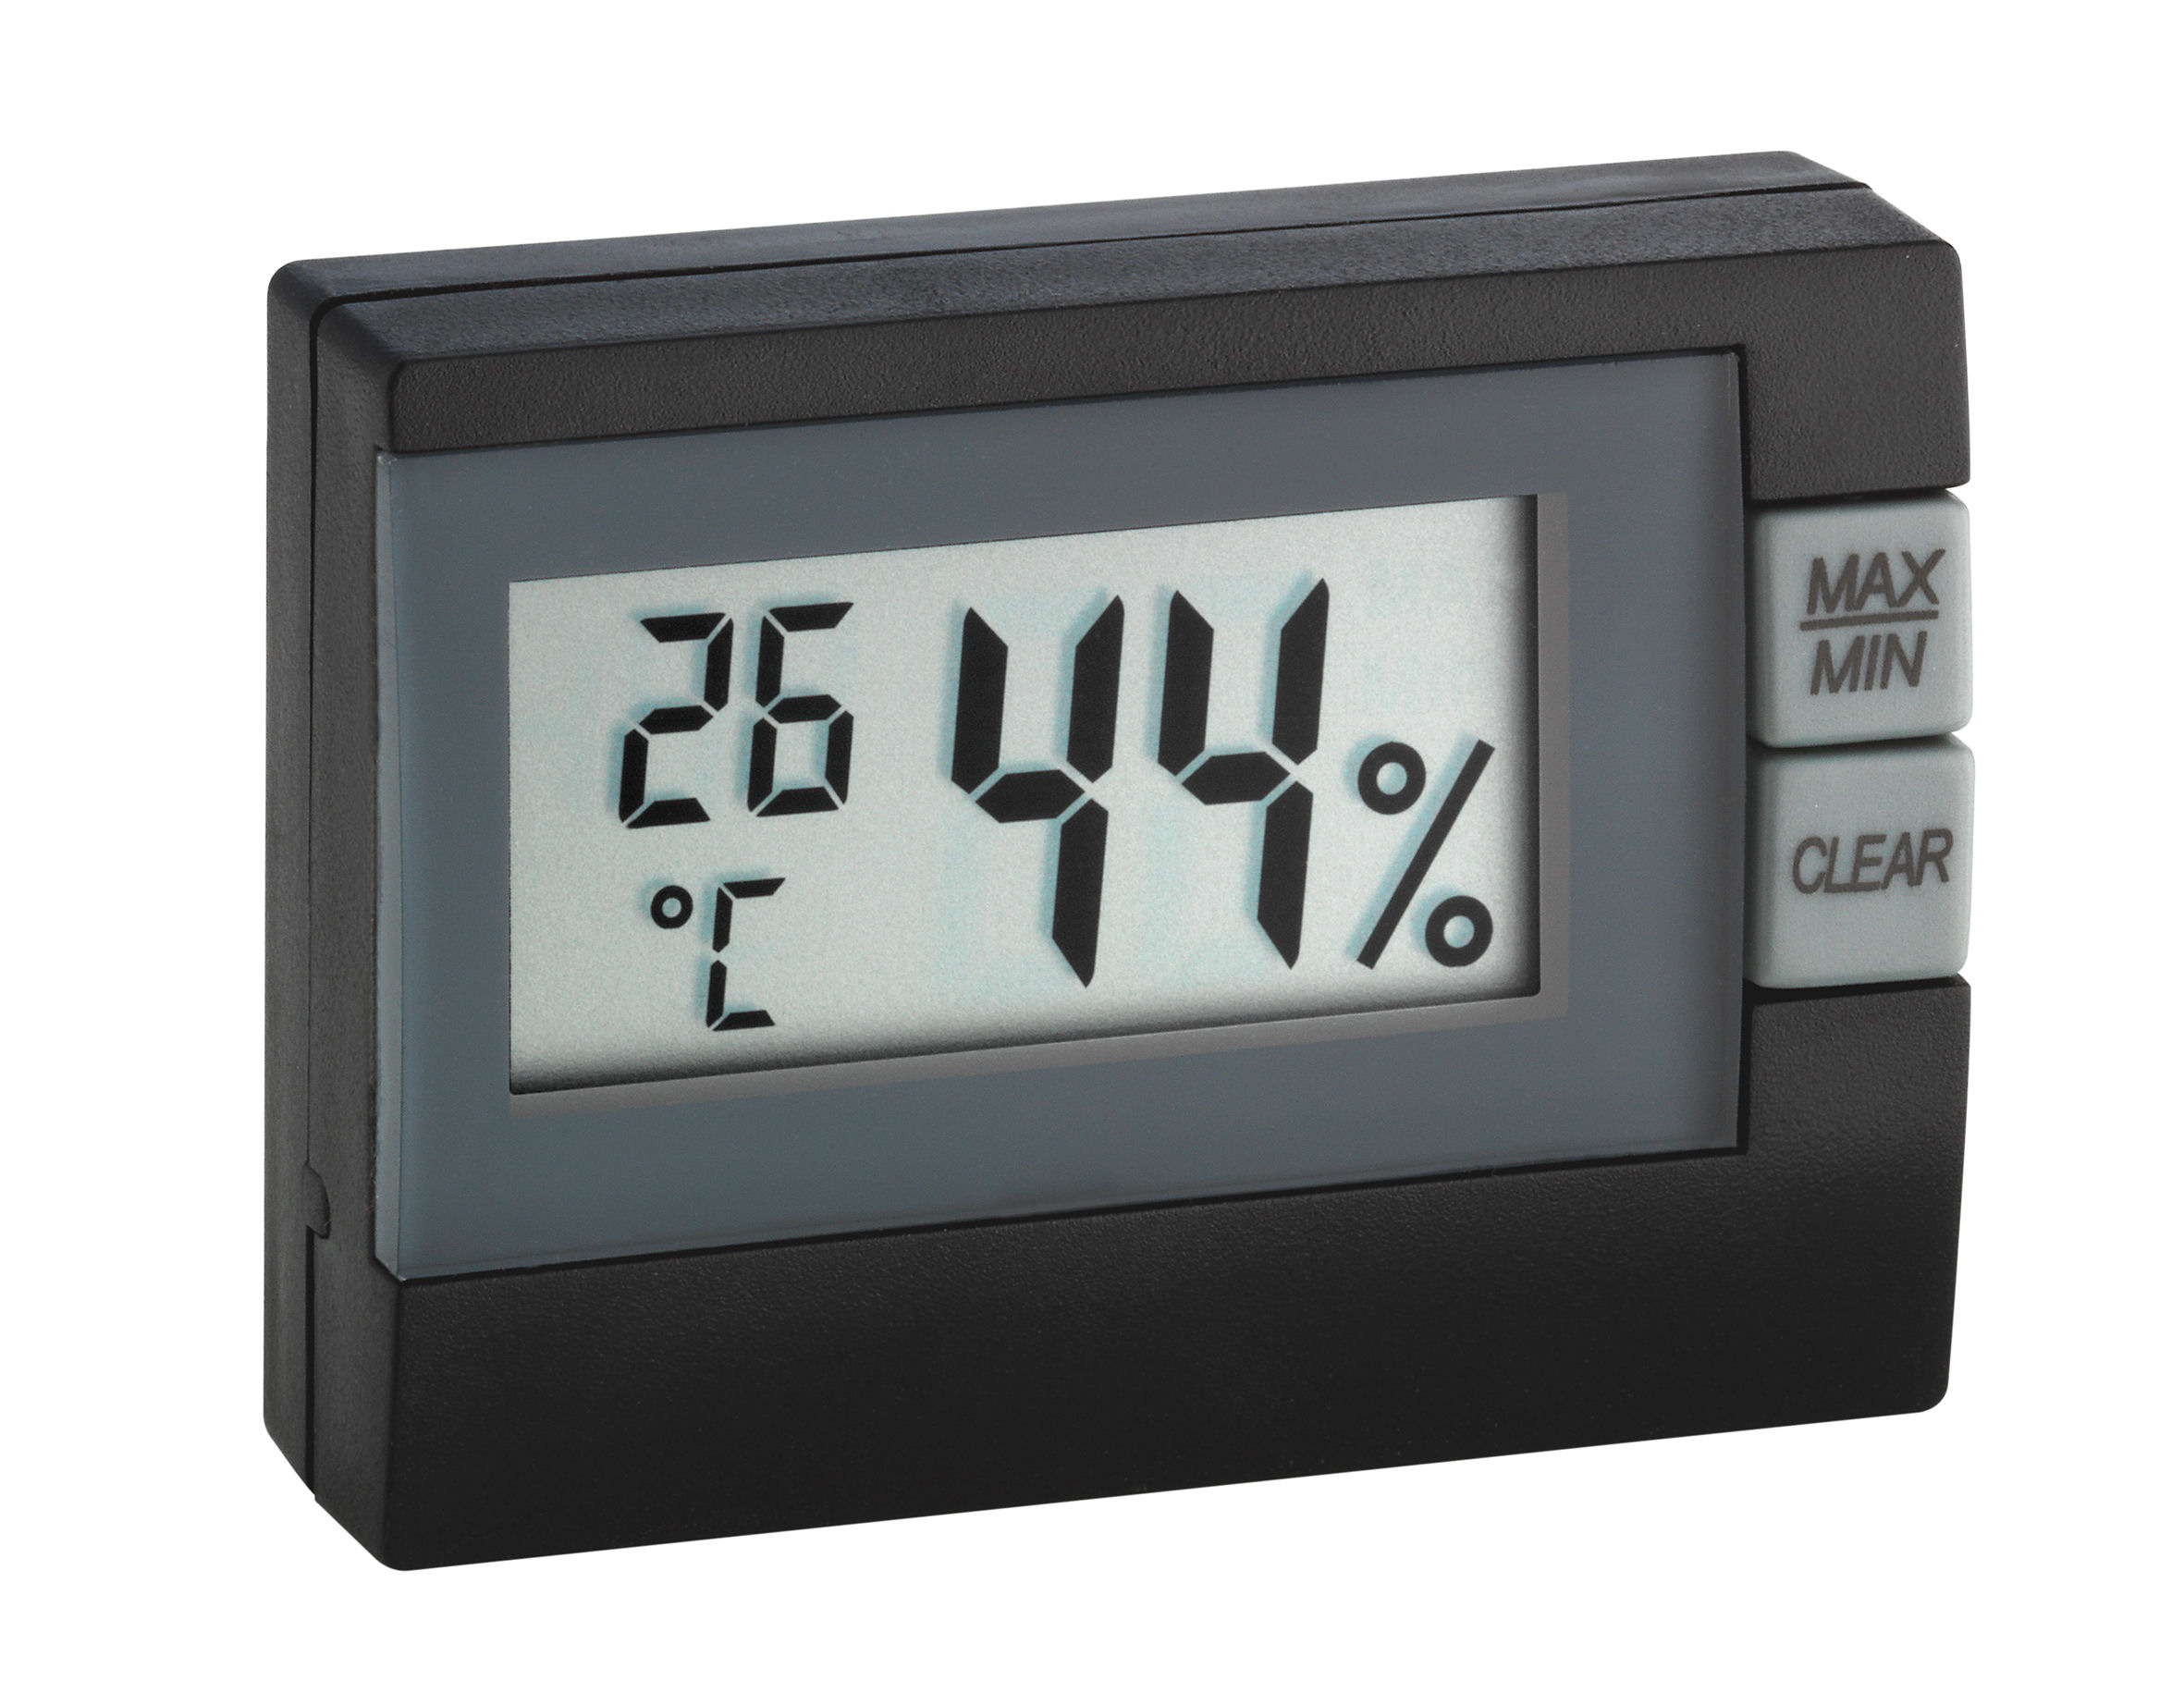 tfa elektronisches thermo hygrometer. Black Bedroom Furniture Sets. Home Design Ideas